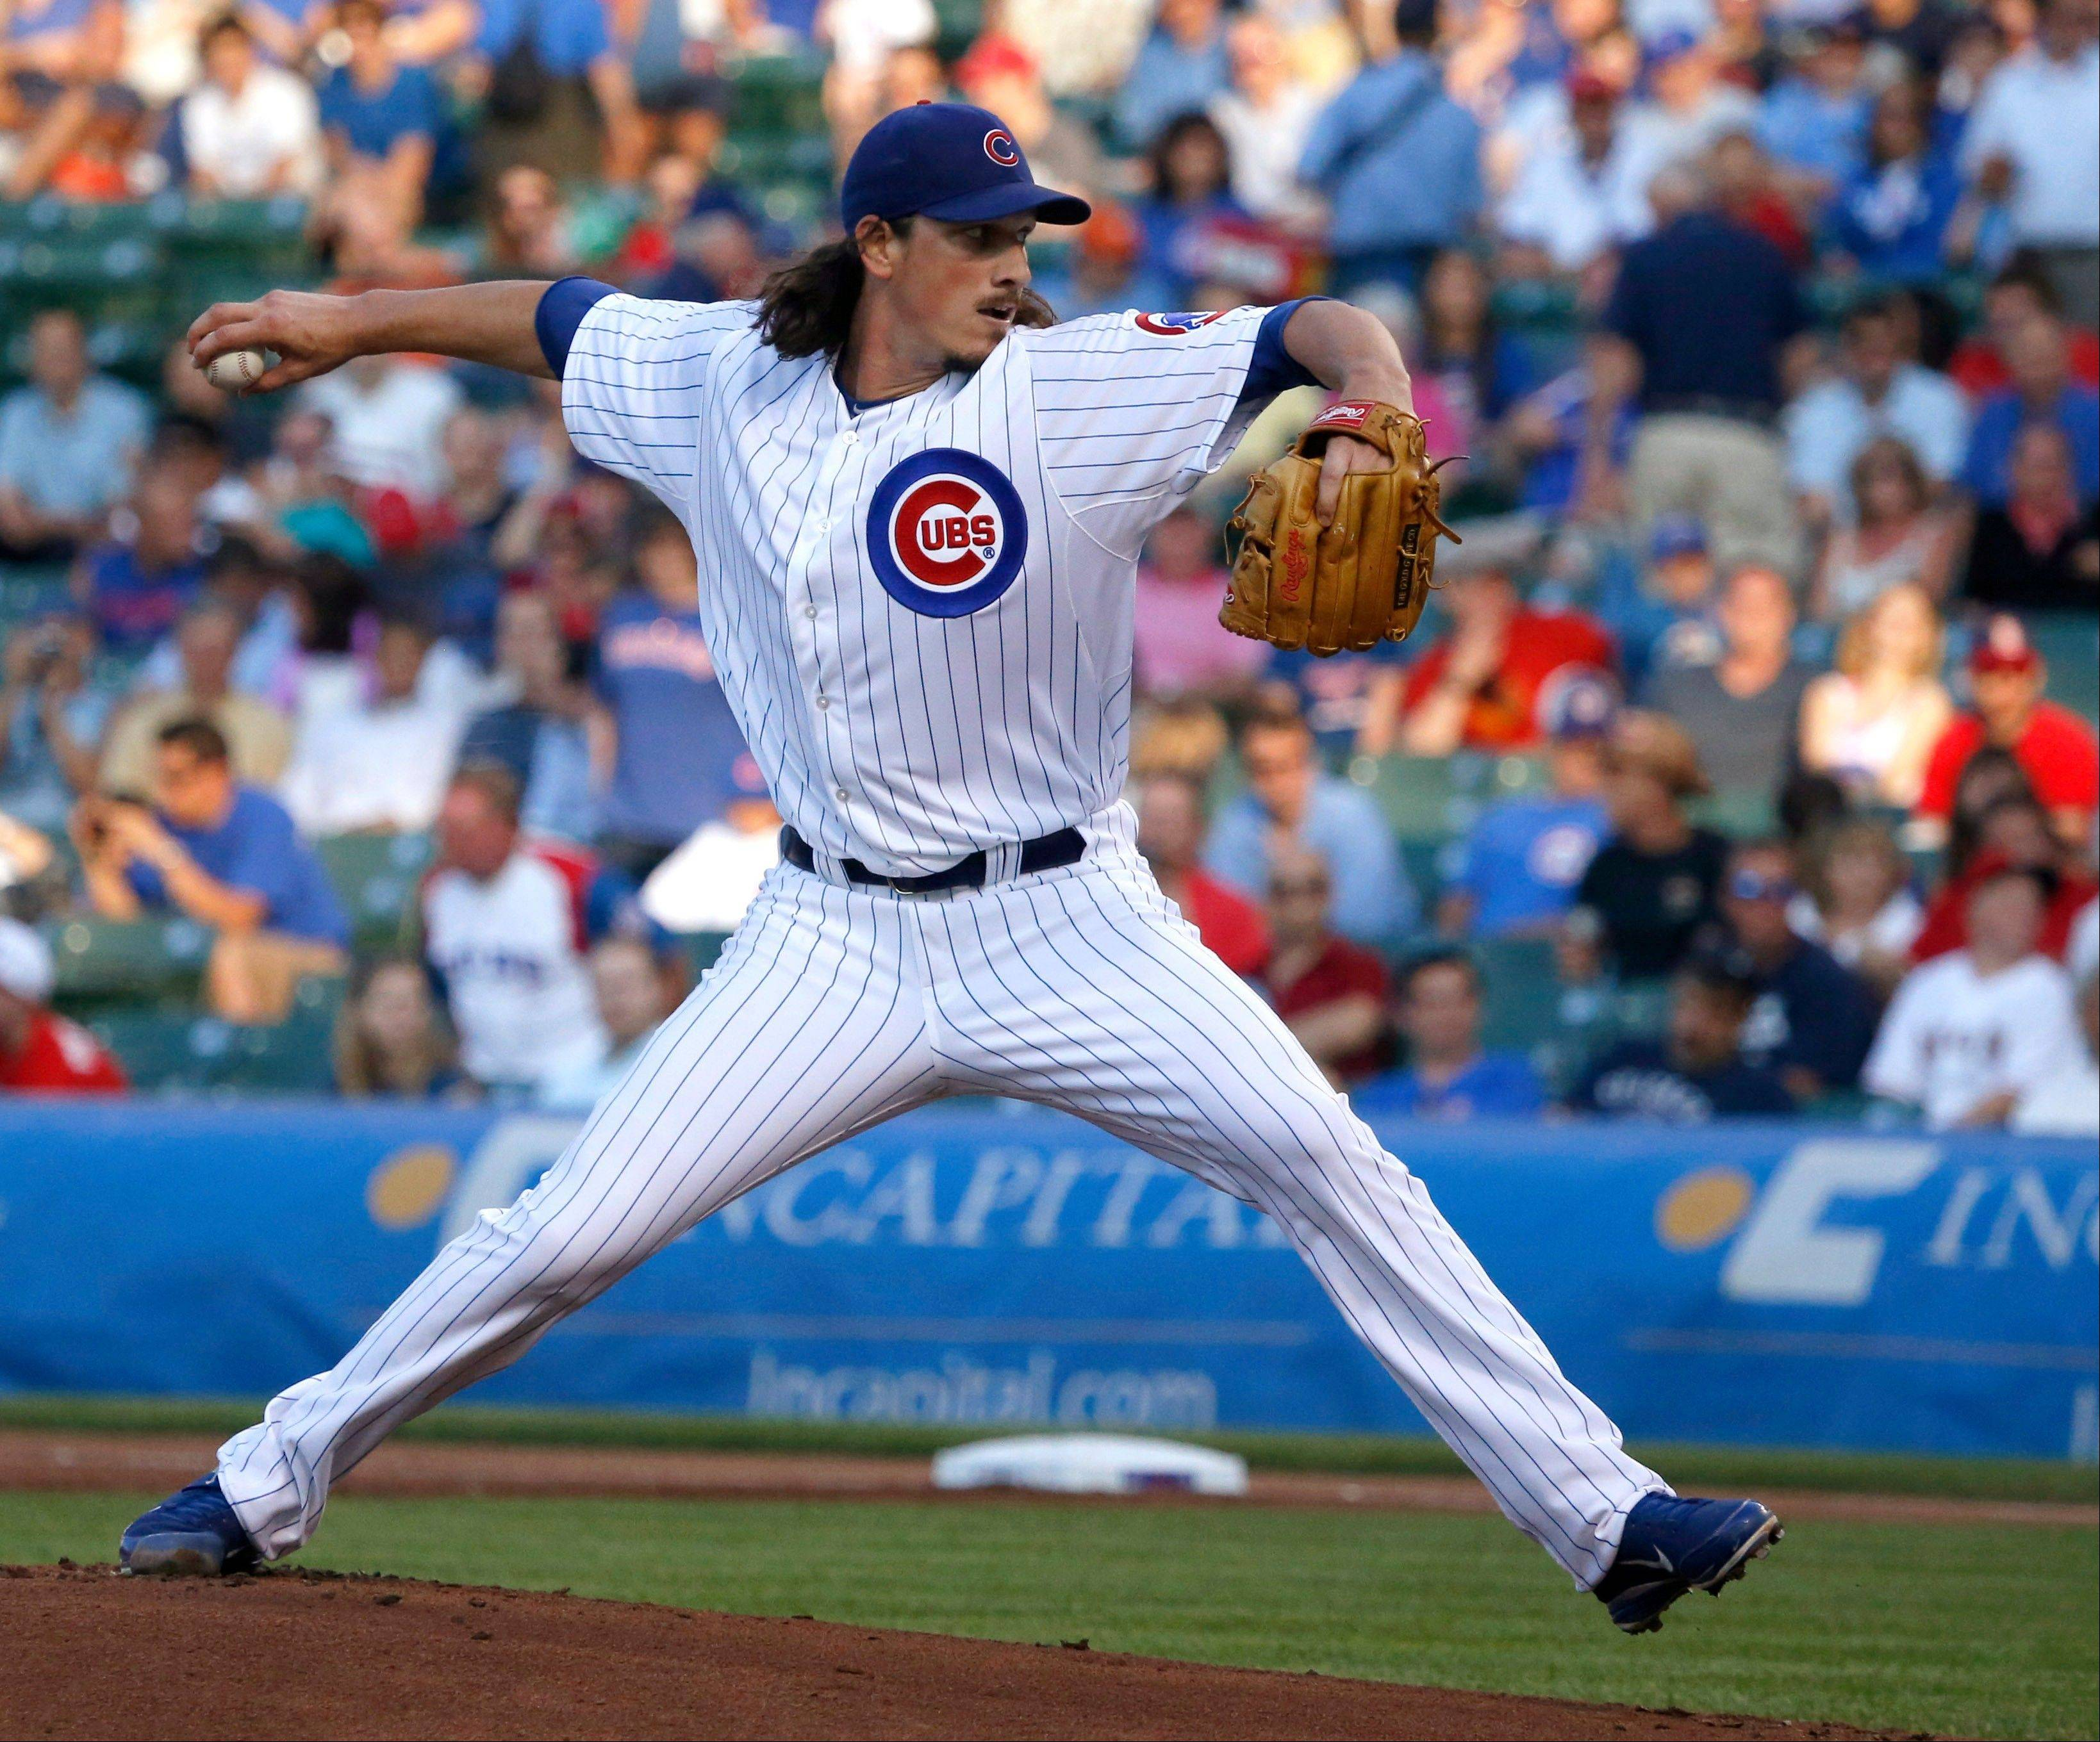 Chicago Cubs pitcher Jeff Samardzija and the team agreed Saturday to a one-year deal worth $5.345 million.